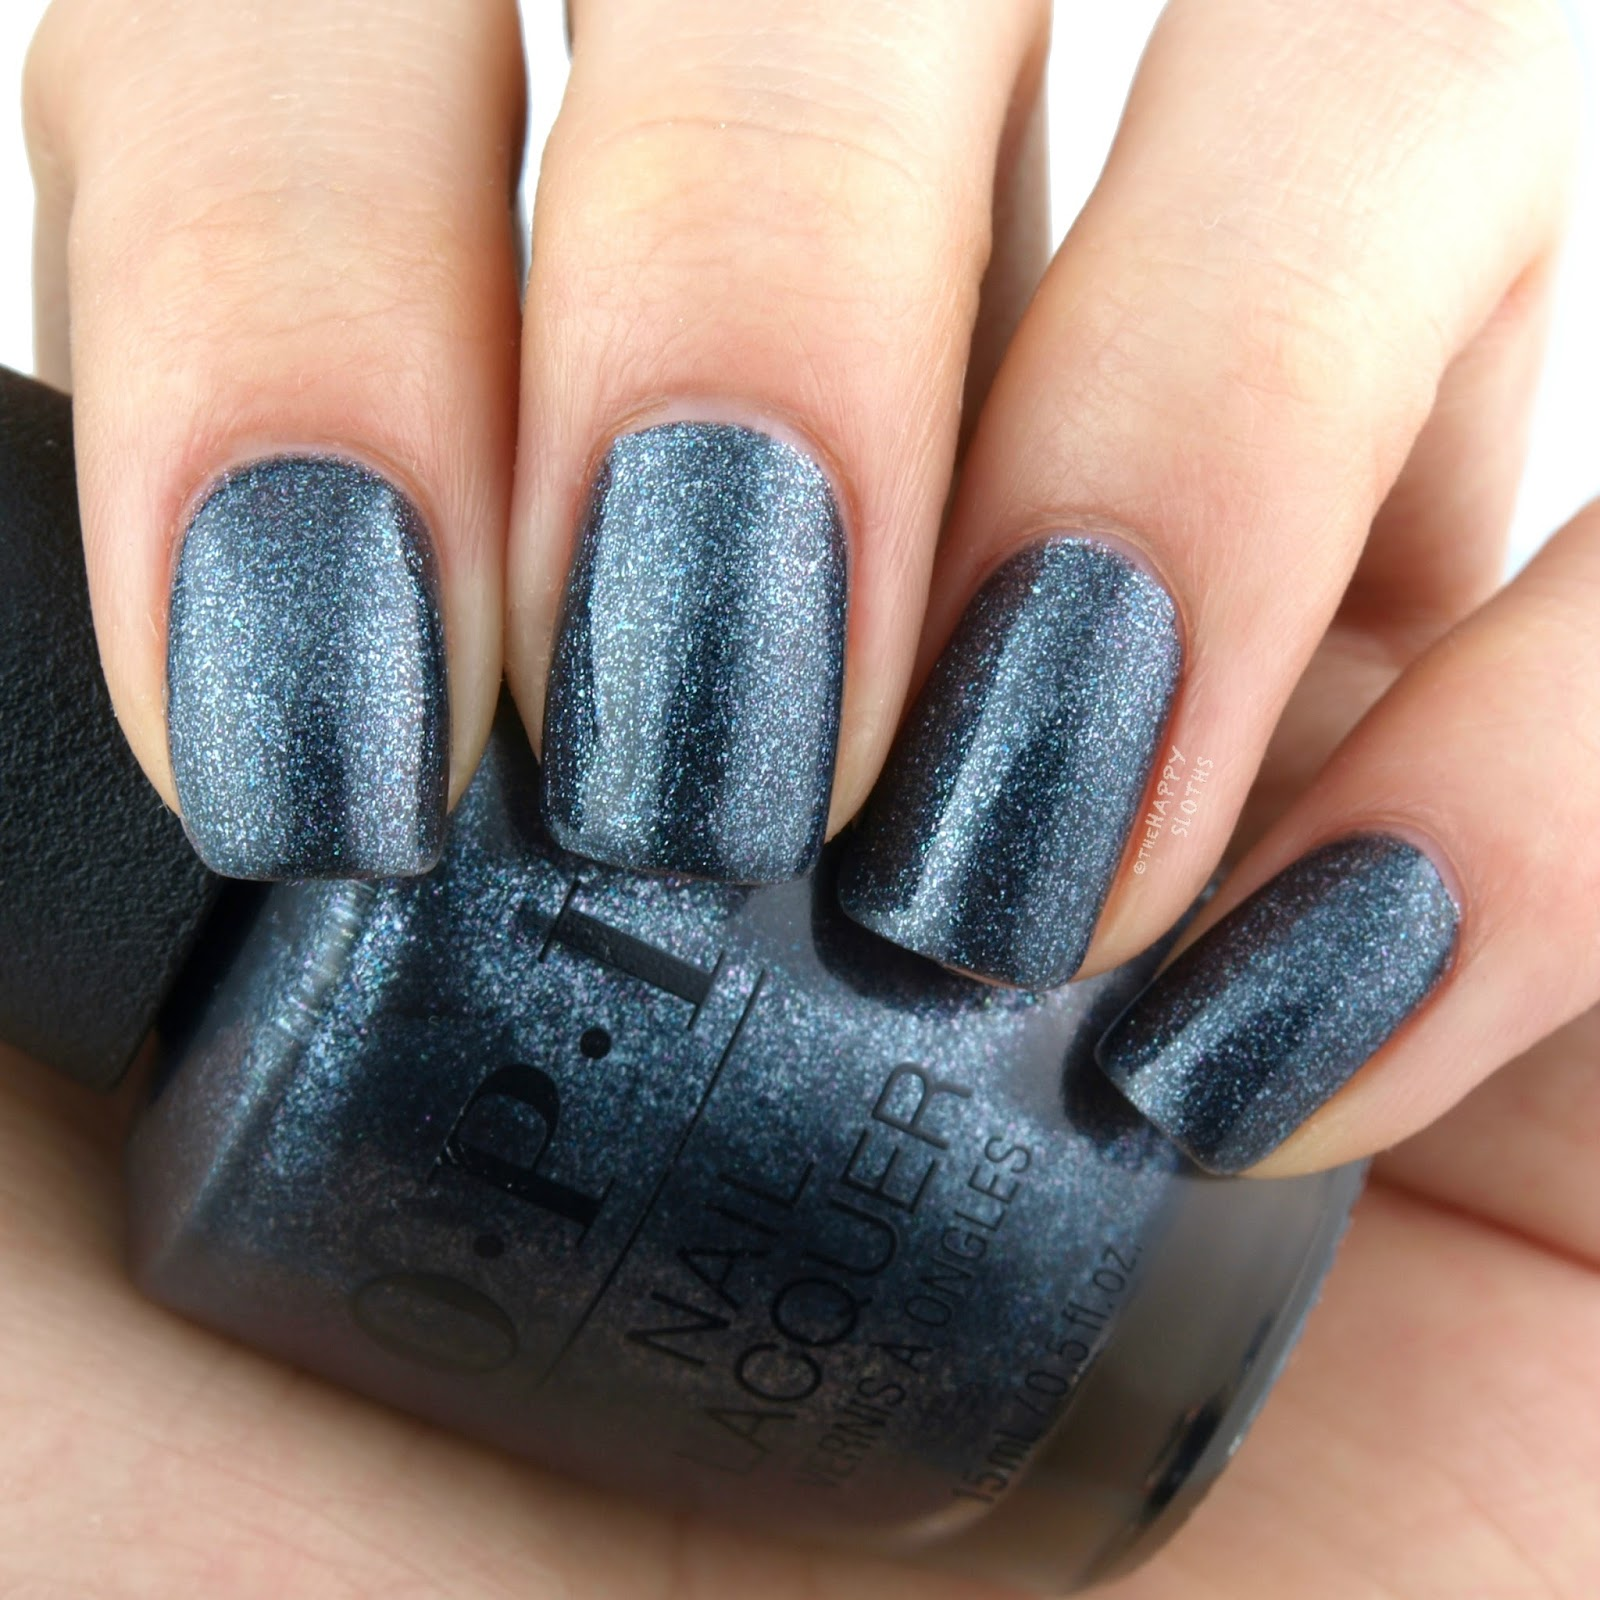 OPI Grease Collection | Danny & Sandy 4 Ever!: Review and Swatches